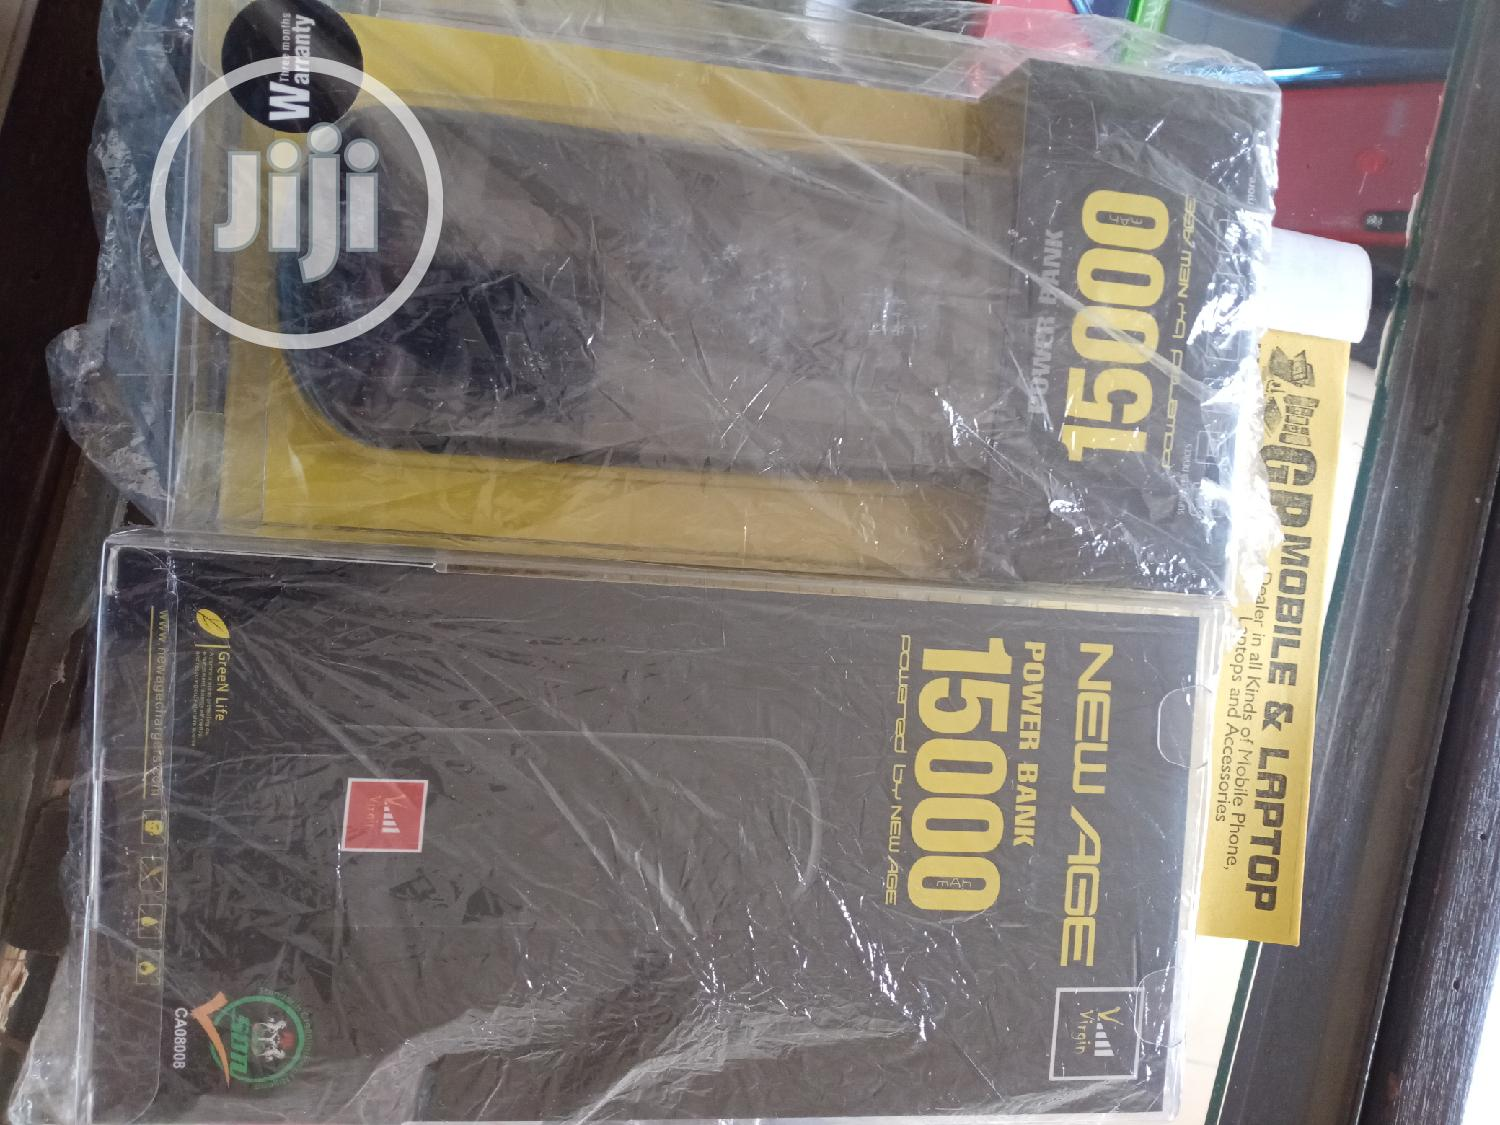 New Age 15000mah   Accessories for Mobile Phones & Tablets for sale in Benin City, Edo State, Nigeria